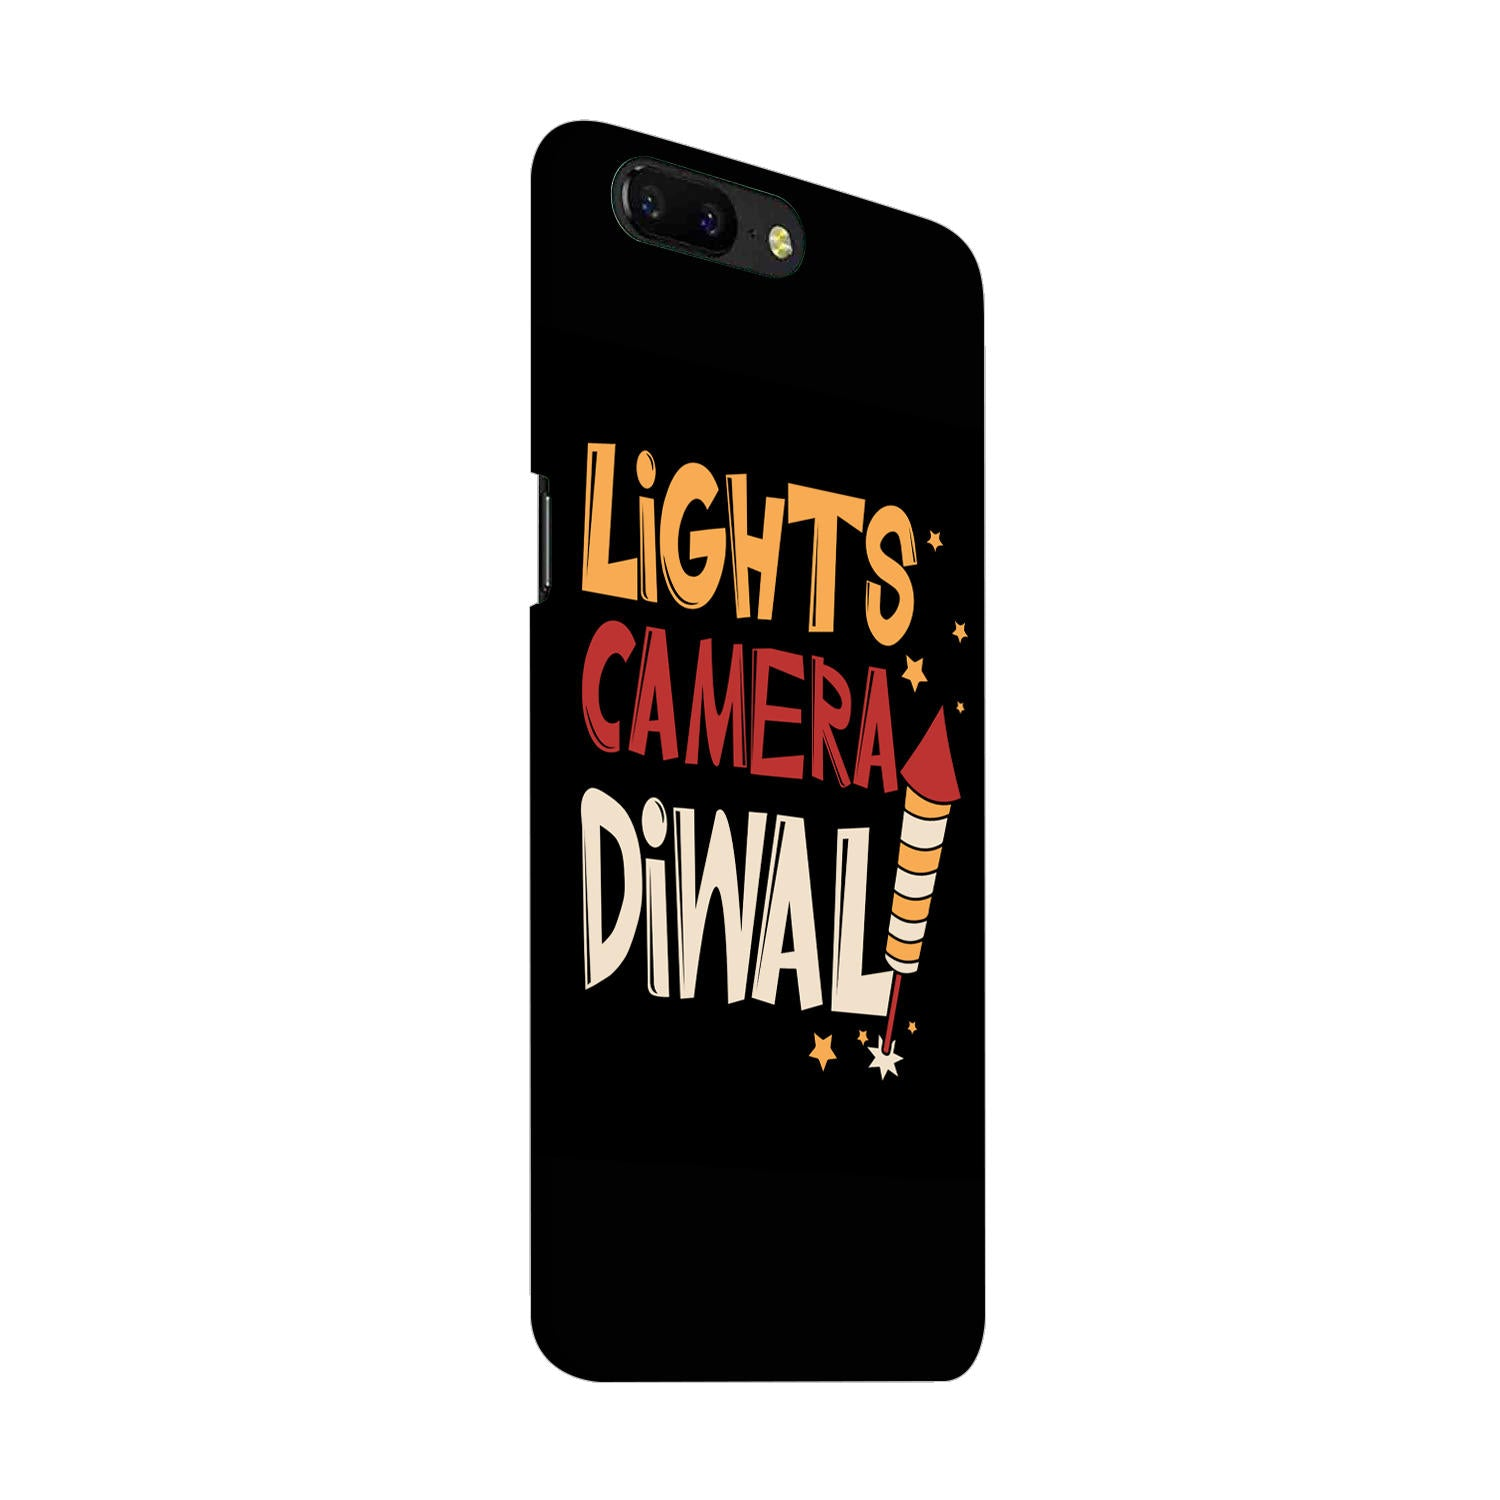 Lights Camera Diwali Enjoy Festival Of Light OnePlus 5 Mobile Cover Case - MADANYU